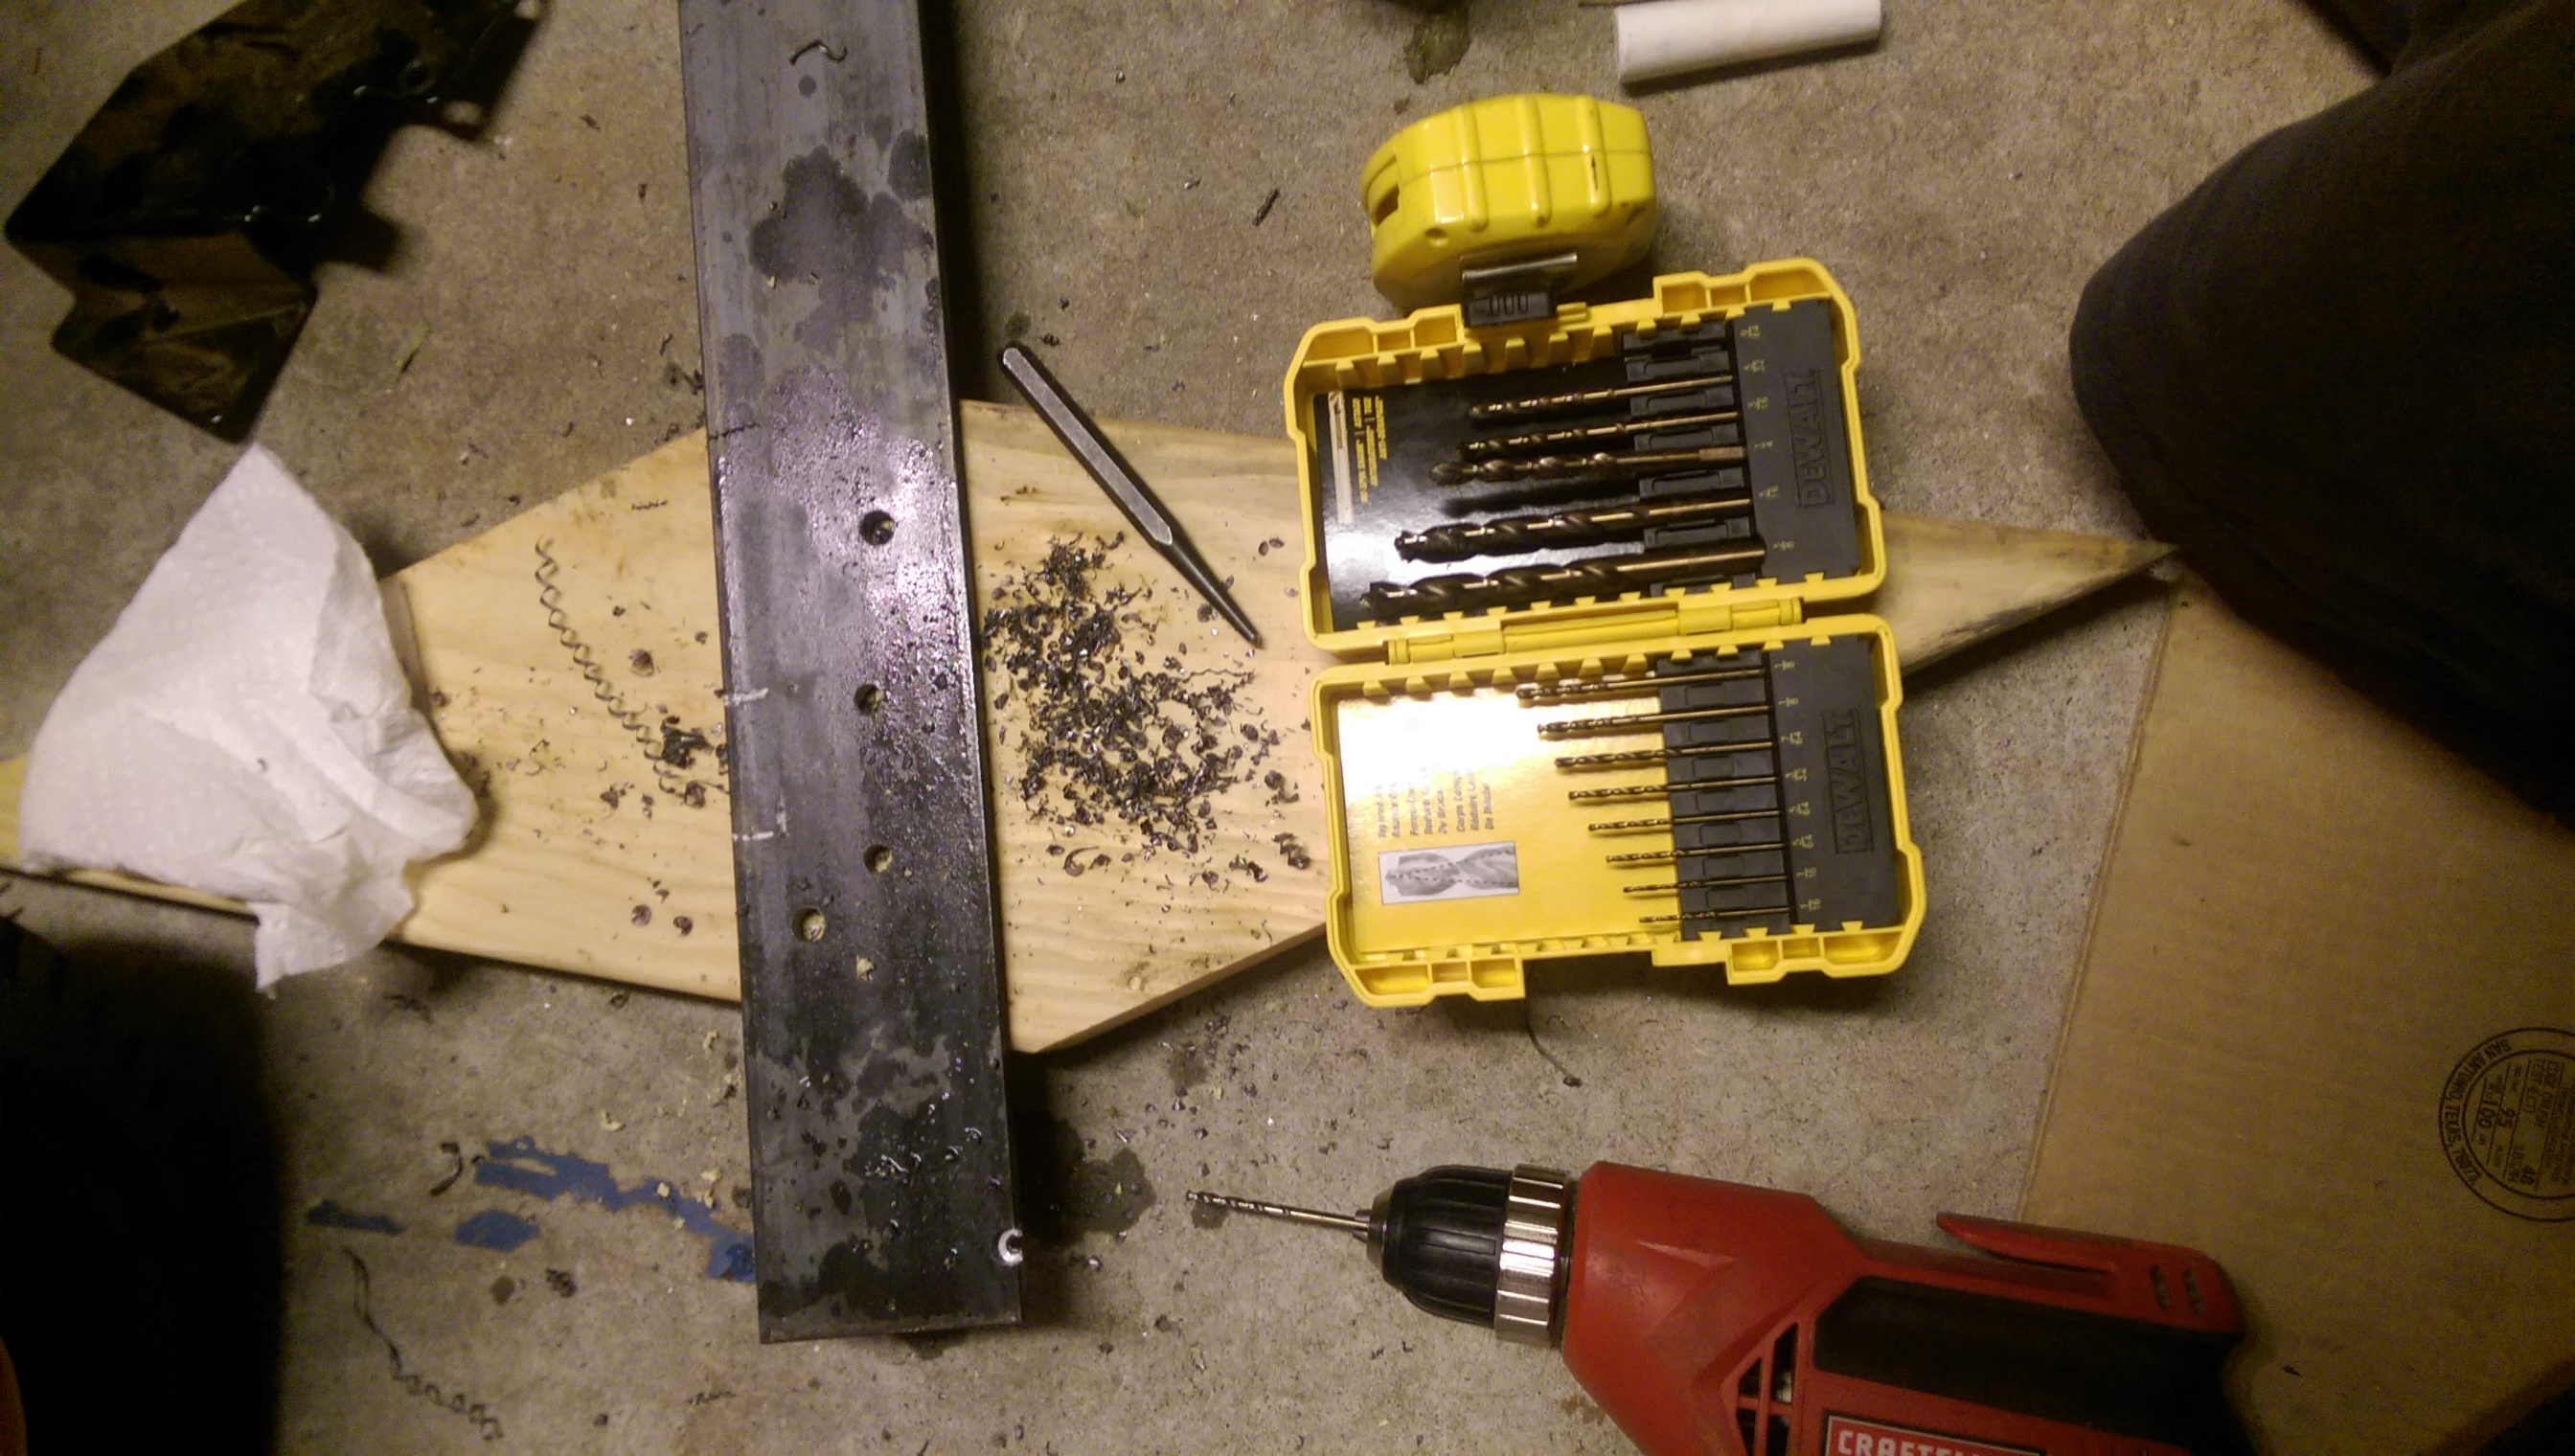 Sears Craftsman 247 27038 project tractor - MyTractorForum